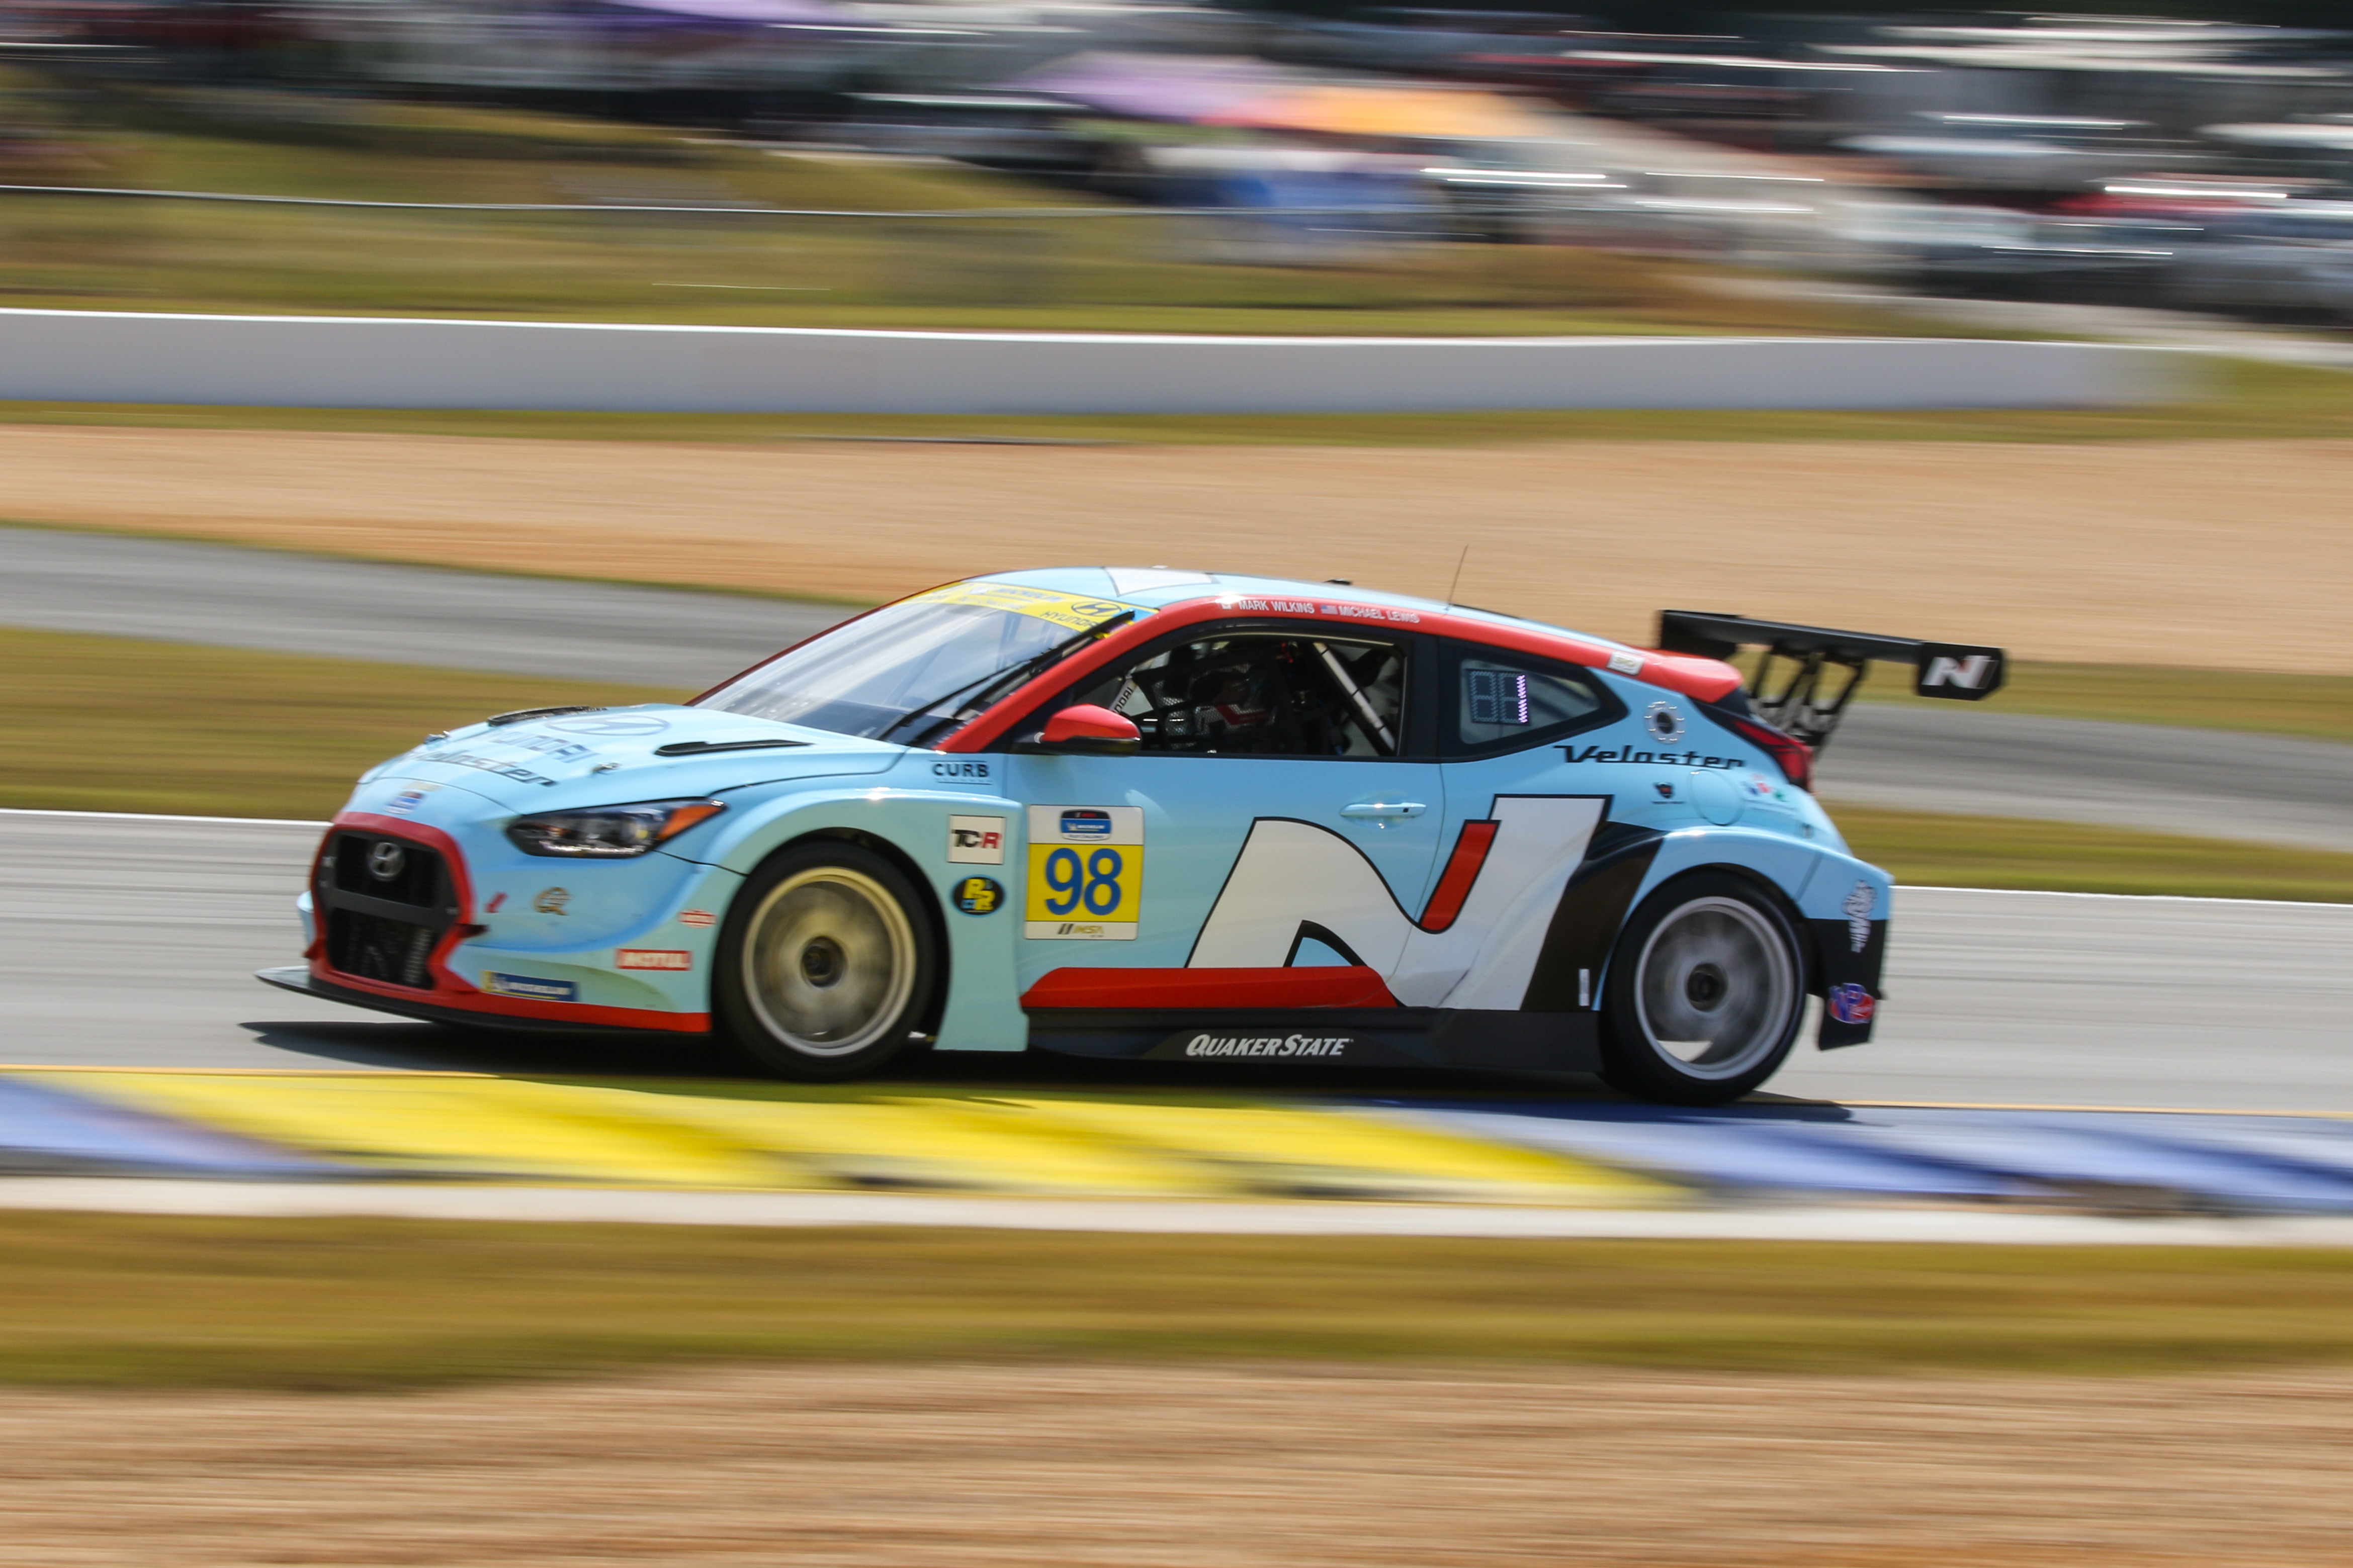 Michael Lewis/Mark Wilkins - Veloster N TCR - Road Atlanta